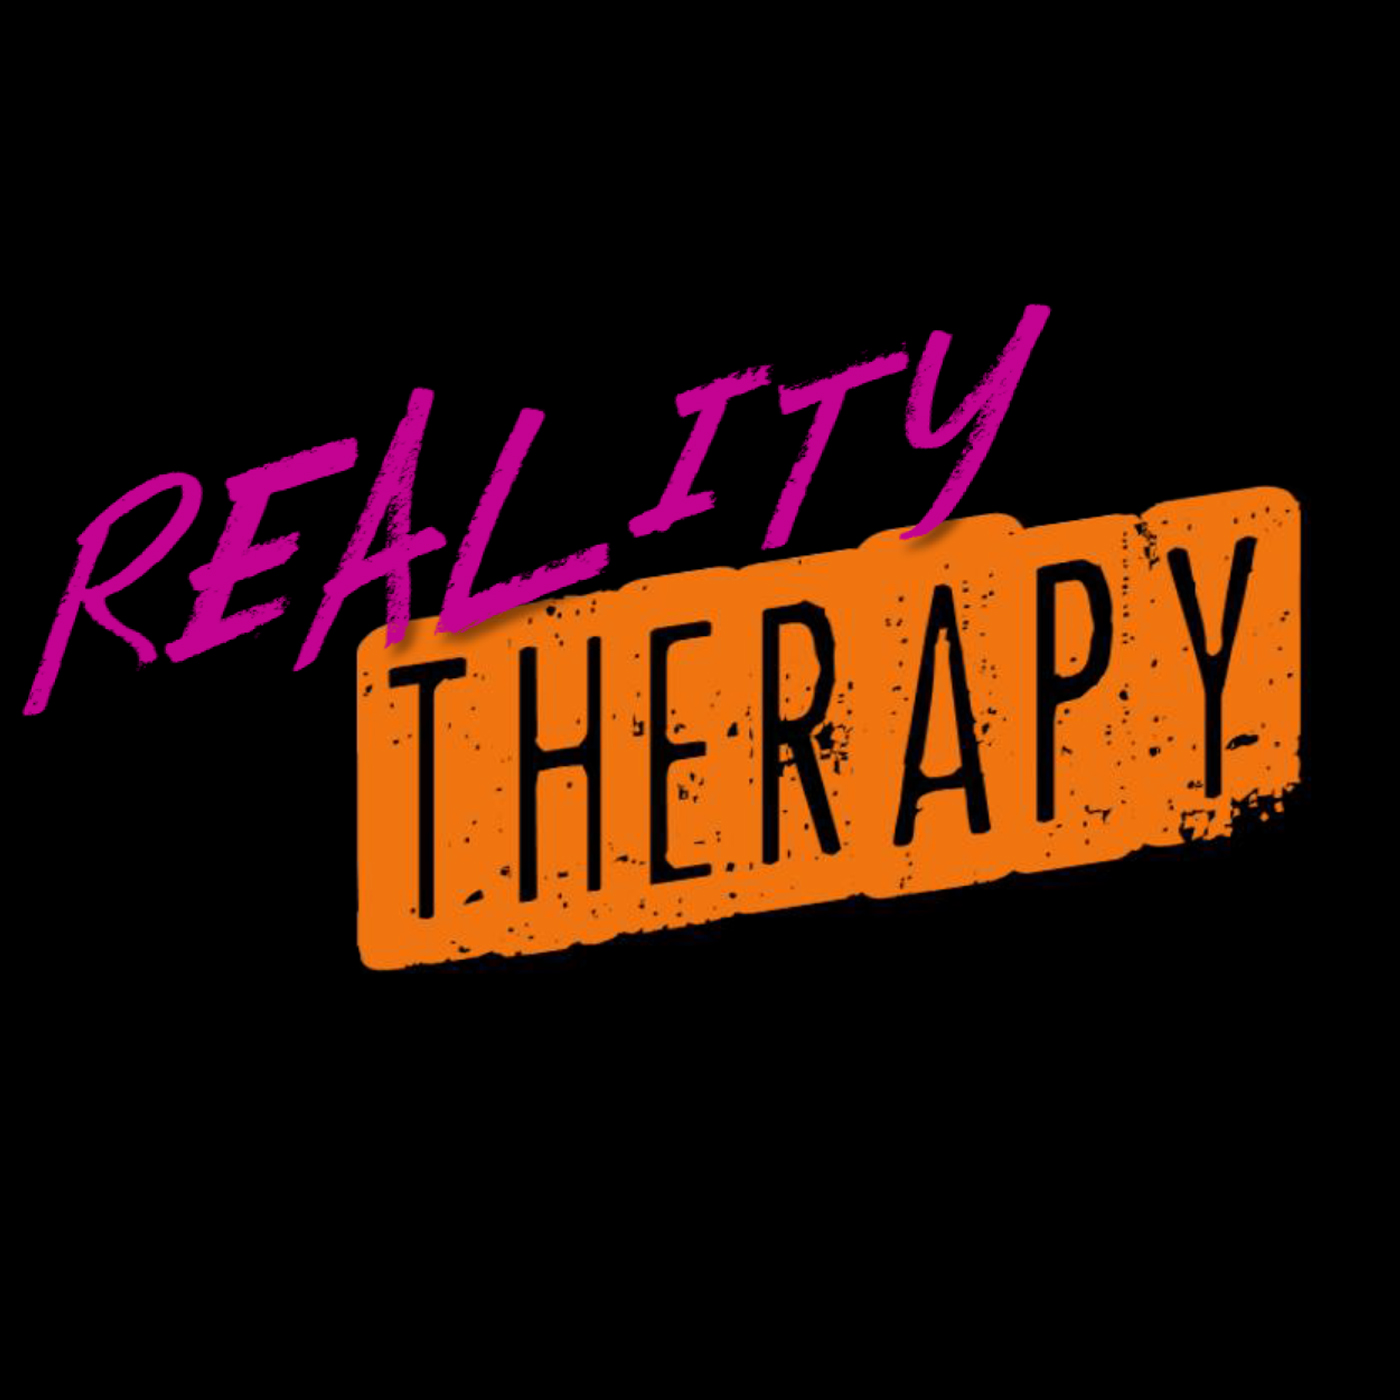 REALITY THERAPY - Hosted by Danny Passman and Lauren Burger, executive producers and casting agents for unscripted television. Get to know these creatives who develop shows for Bravo, Discovery, TLC, Travel, Food Network, and VH1 as they chat process and recant war stories with in-studio industry guests, plus take live calls from potential talent in casting interviews. Subscribe now!#realitytherapy #realitytv #crybabymedia@passmand @lmb513 @crybabymediaLISTEN NOW »